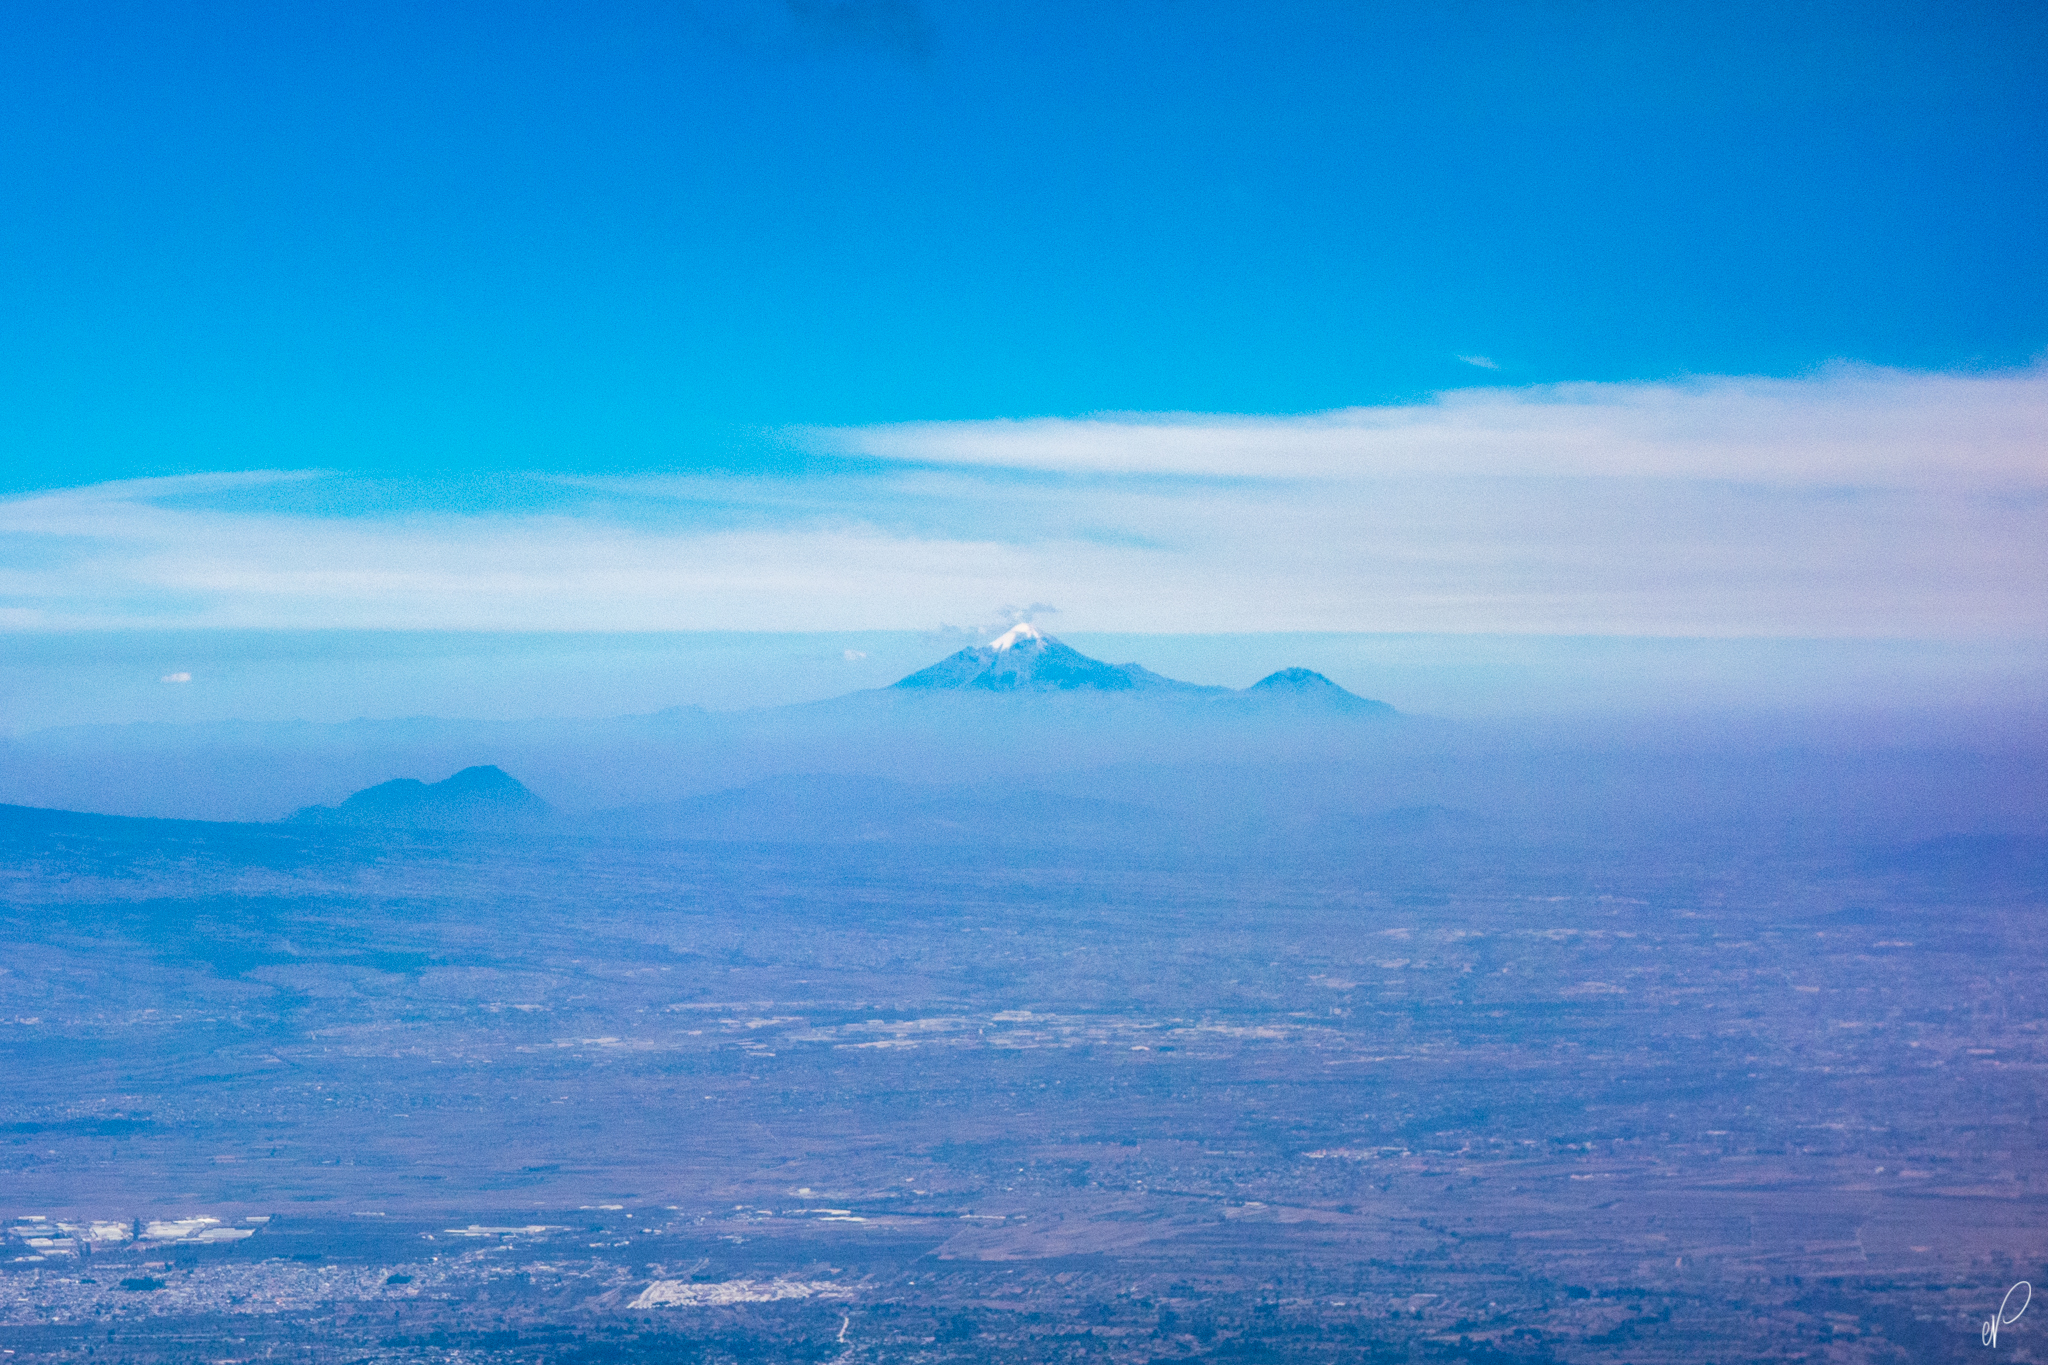 Pico De Orizaba doesn't seem so far.